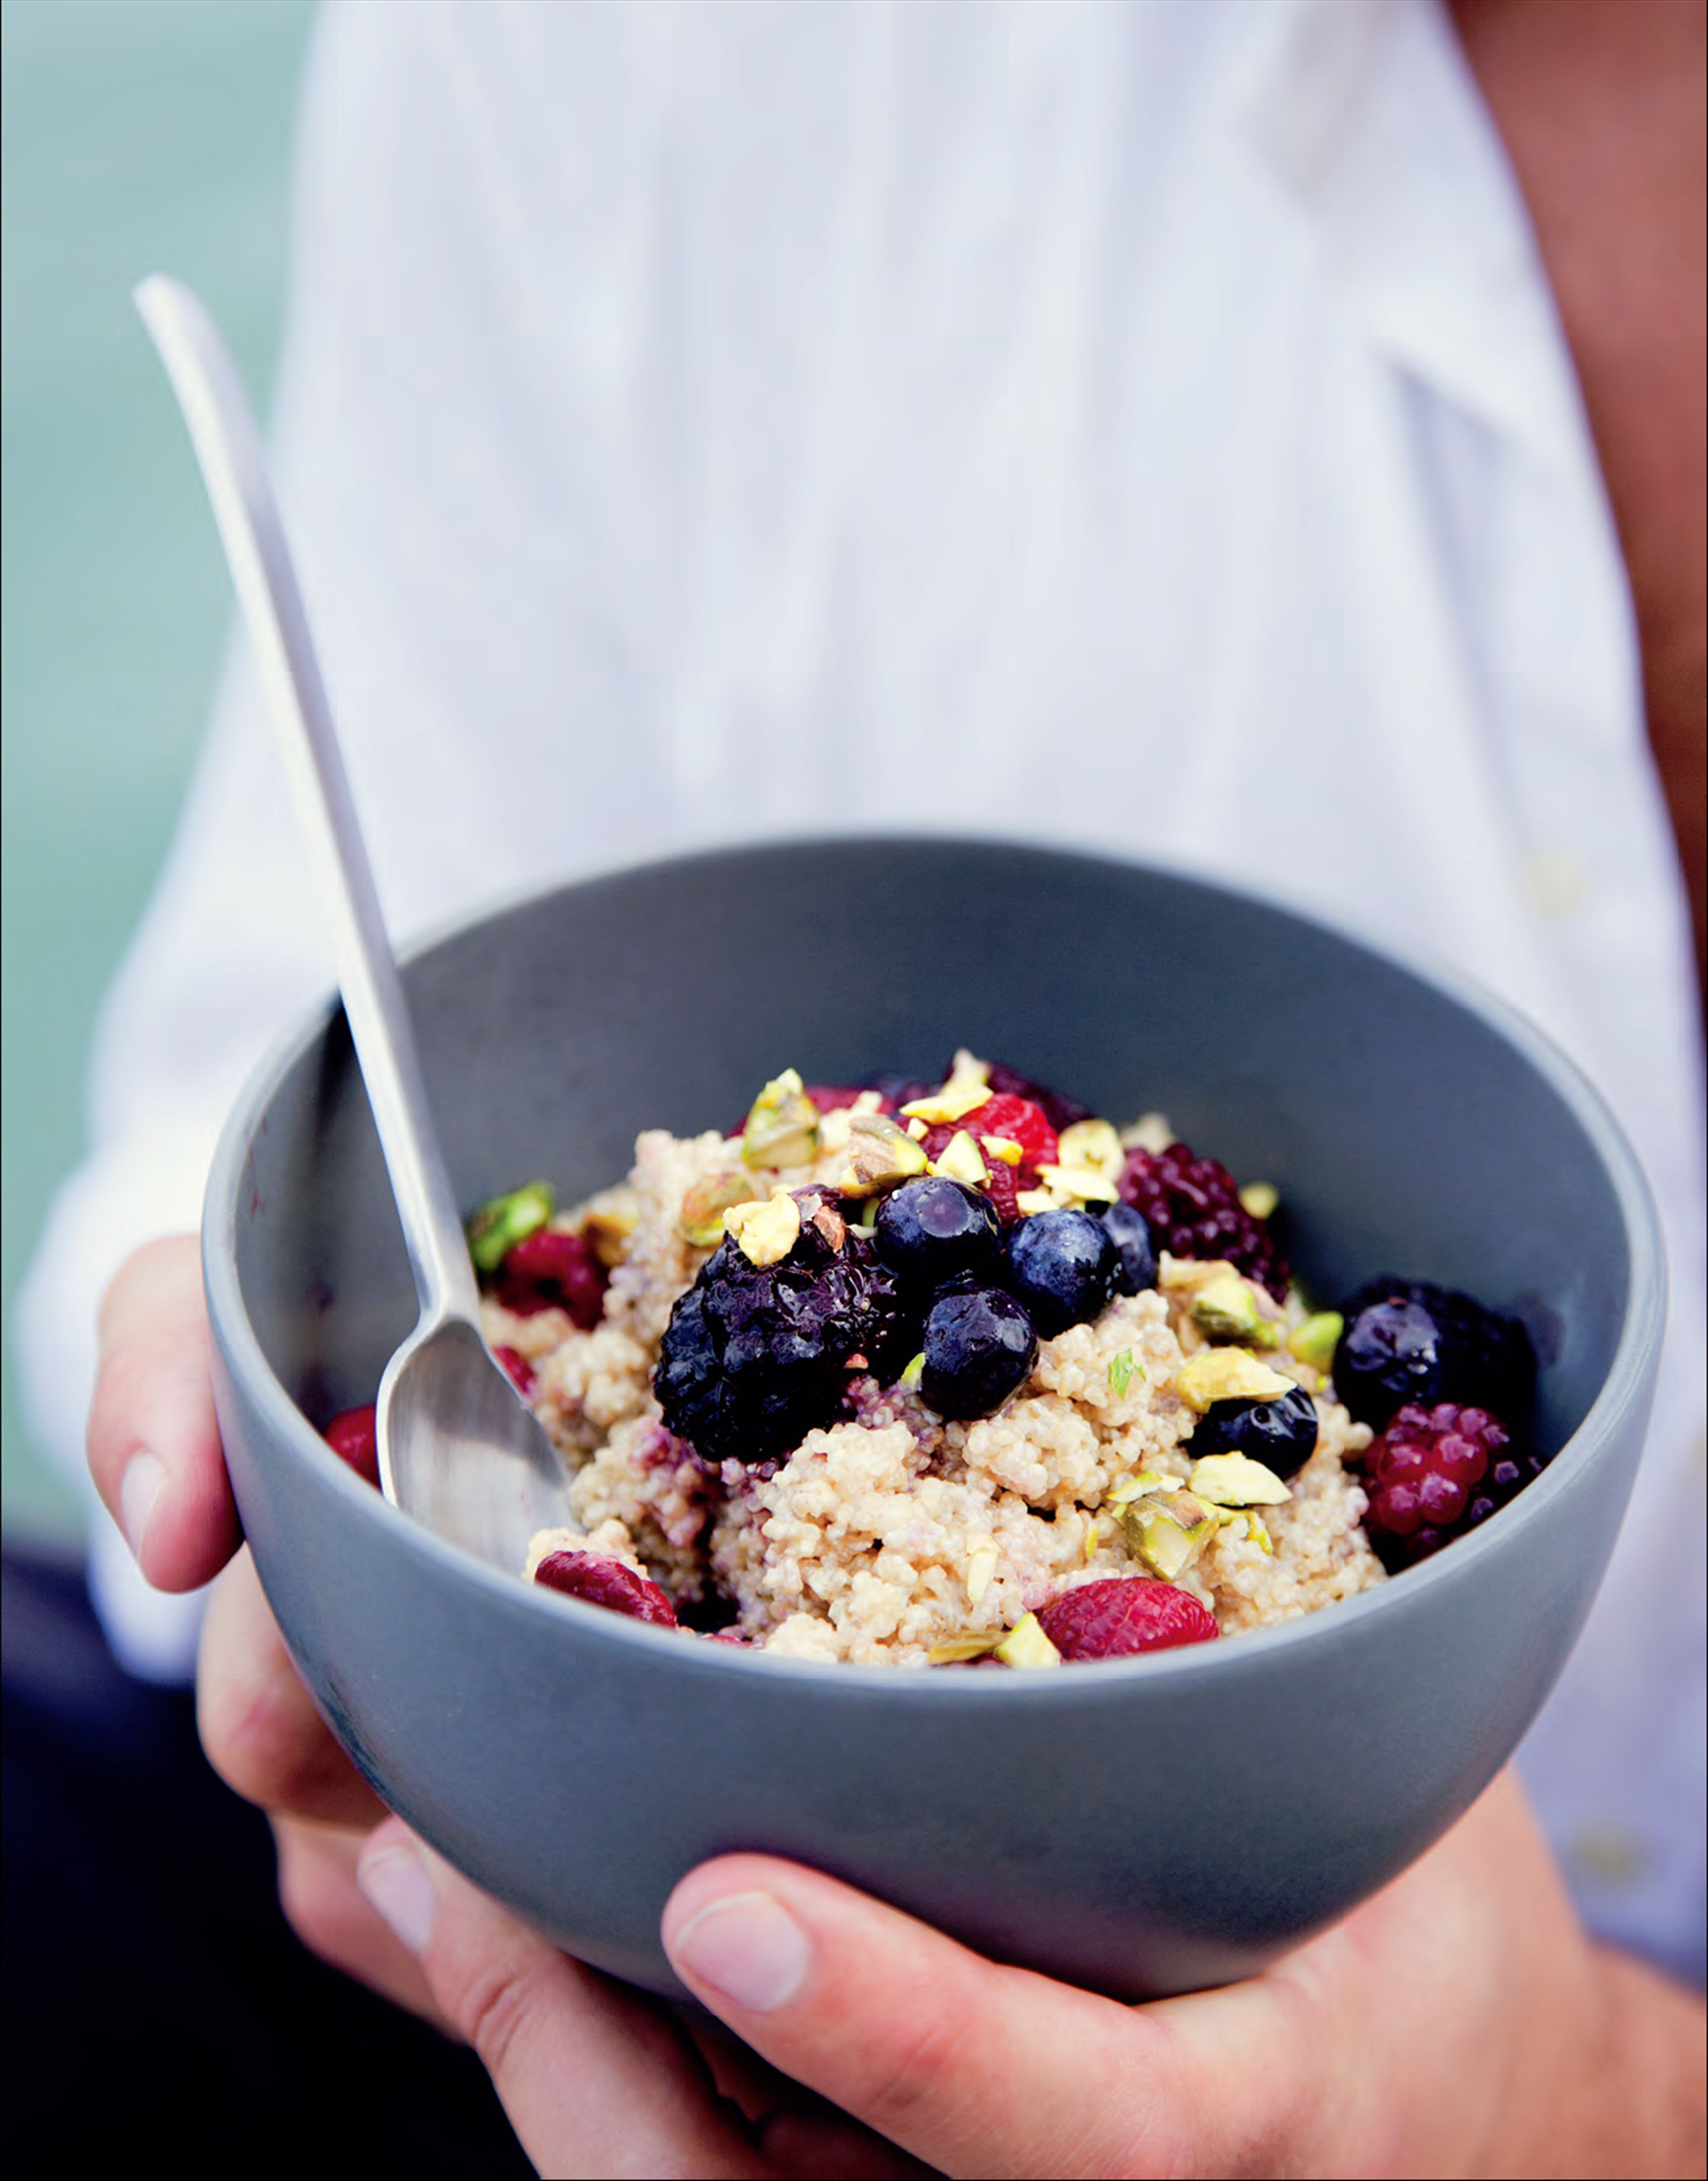 Quinoa porridge with spice and berries